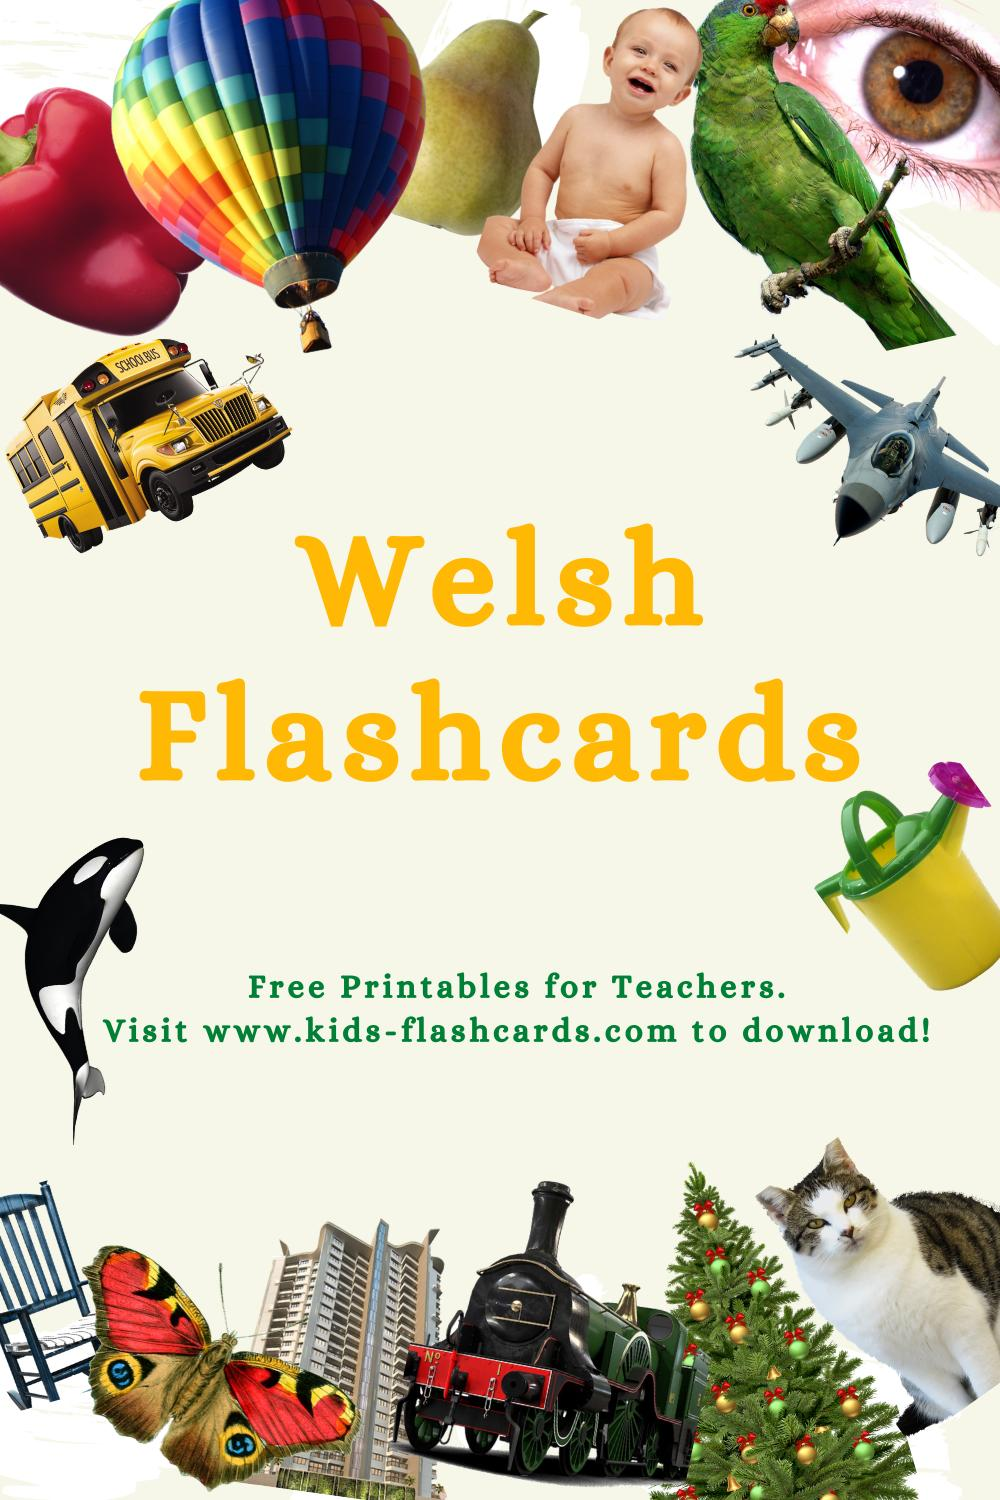 Worksheets to learn Welsh language